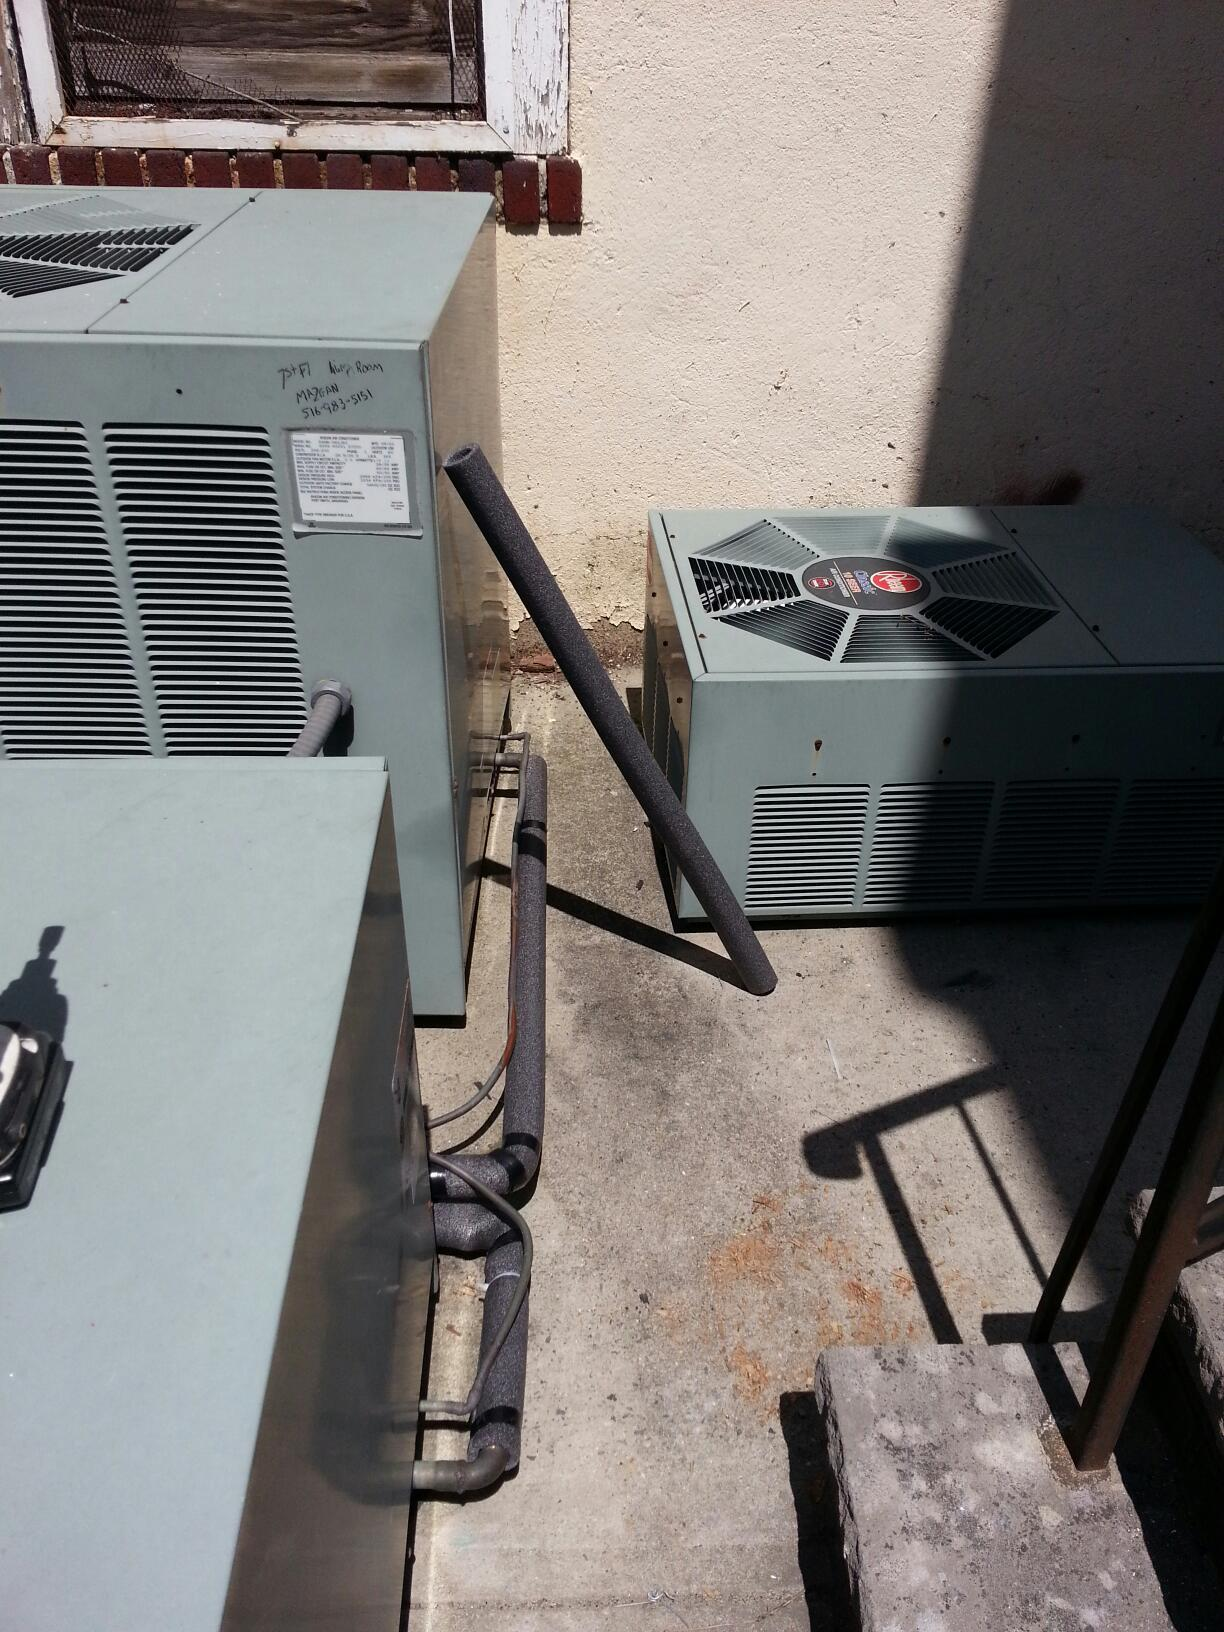 #776554 Mazgan Air Conditioning & Heating Repair In Brooklyn NY  Recommended 8767 Air Conditioning Installation Brooklyn Ny pics with 1224x1632 px on helpvideos.info - Air Conditioners, Air Coolers and more